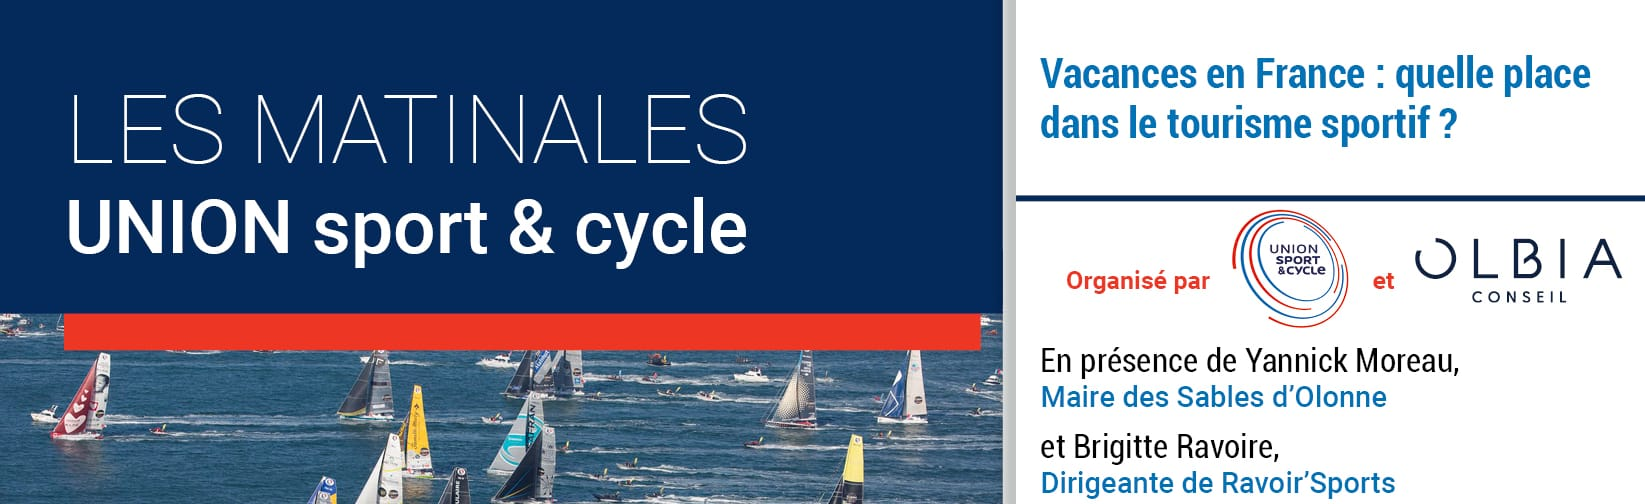 Matinale de l'UNION sport & cycle